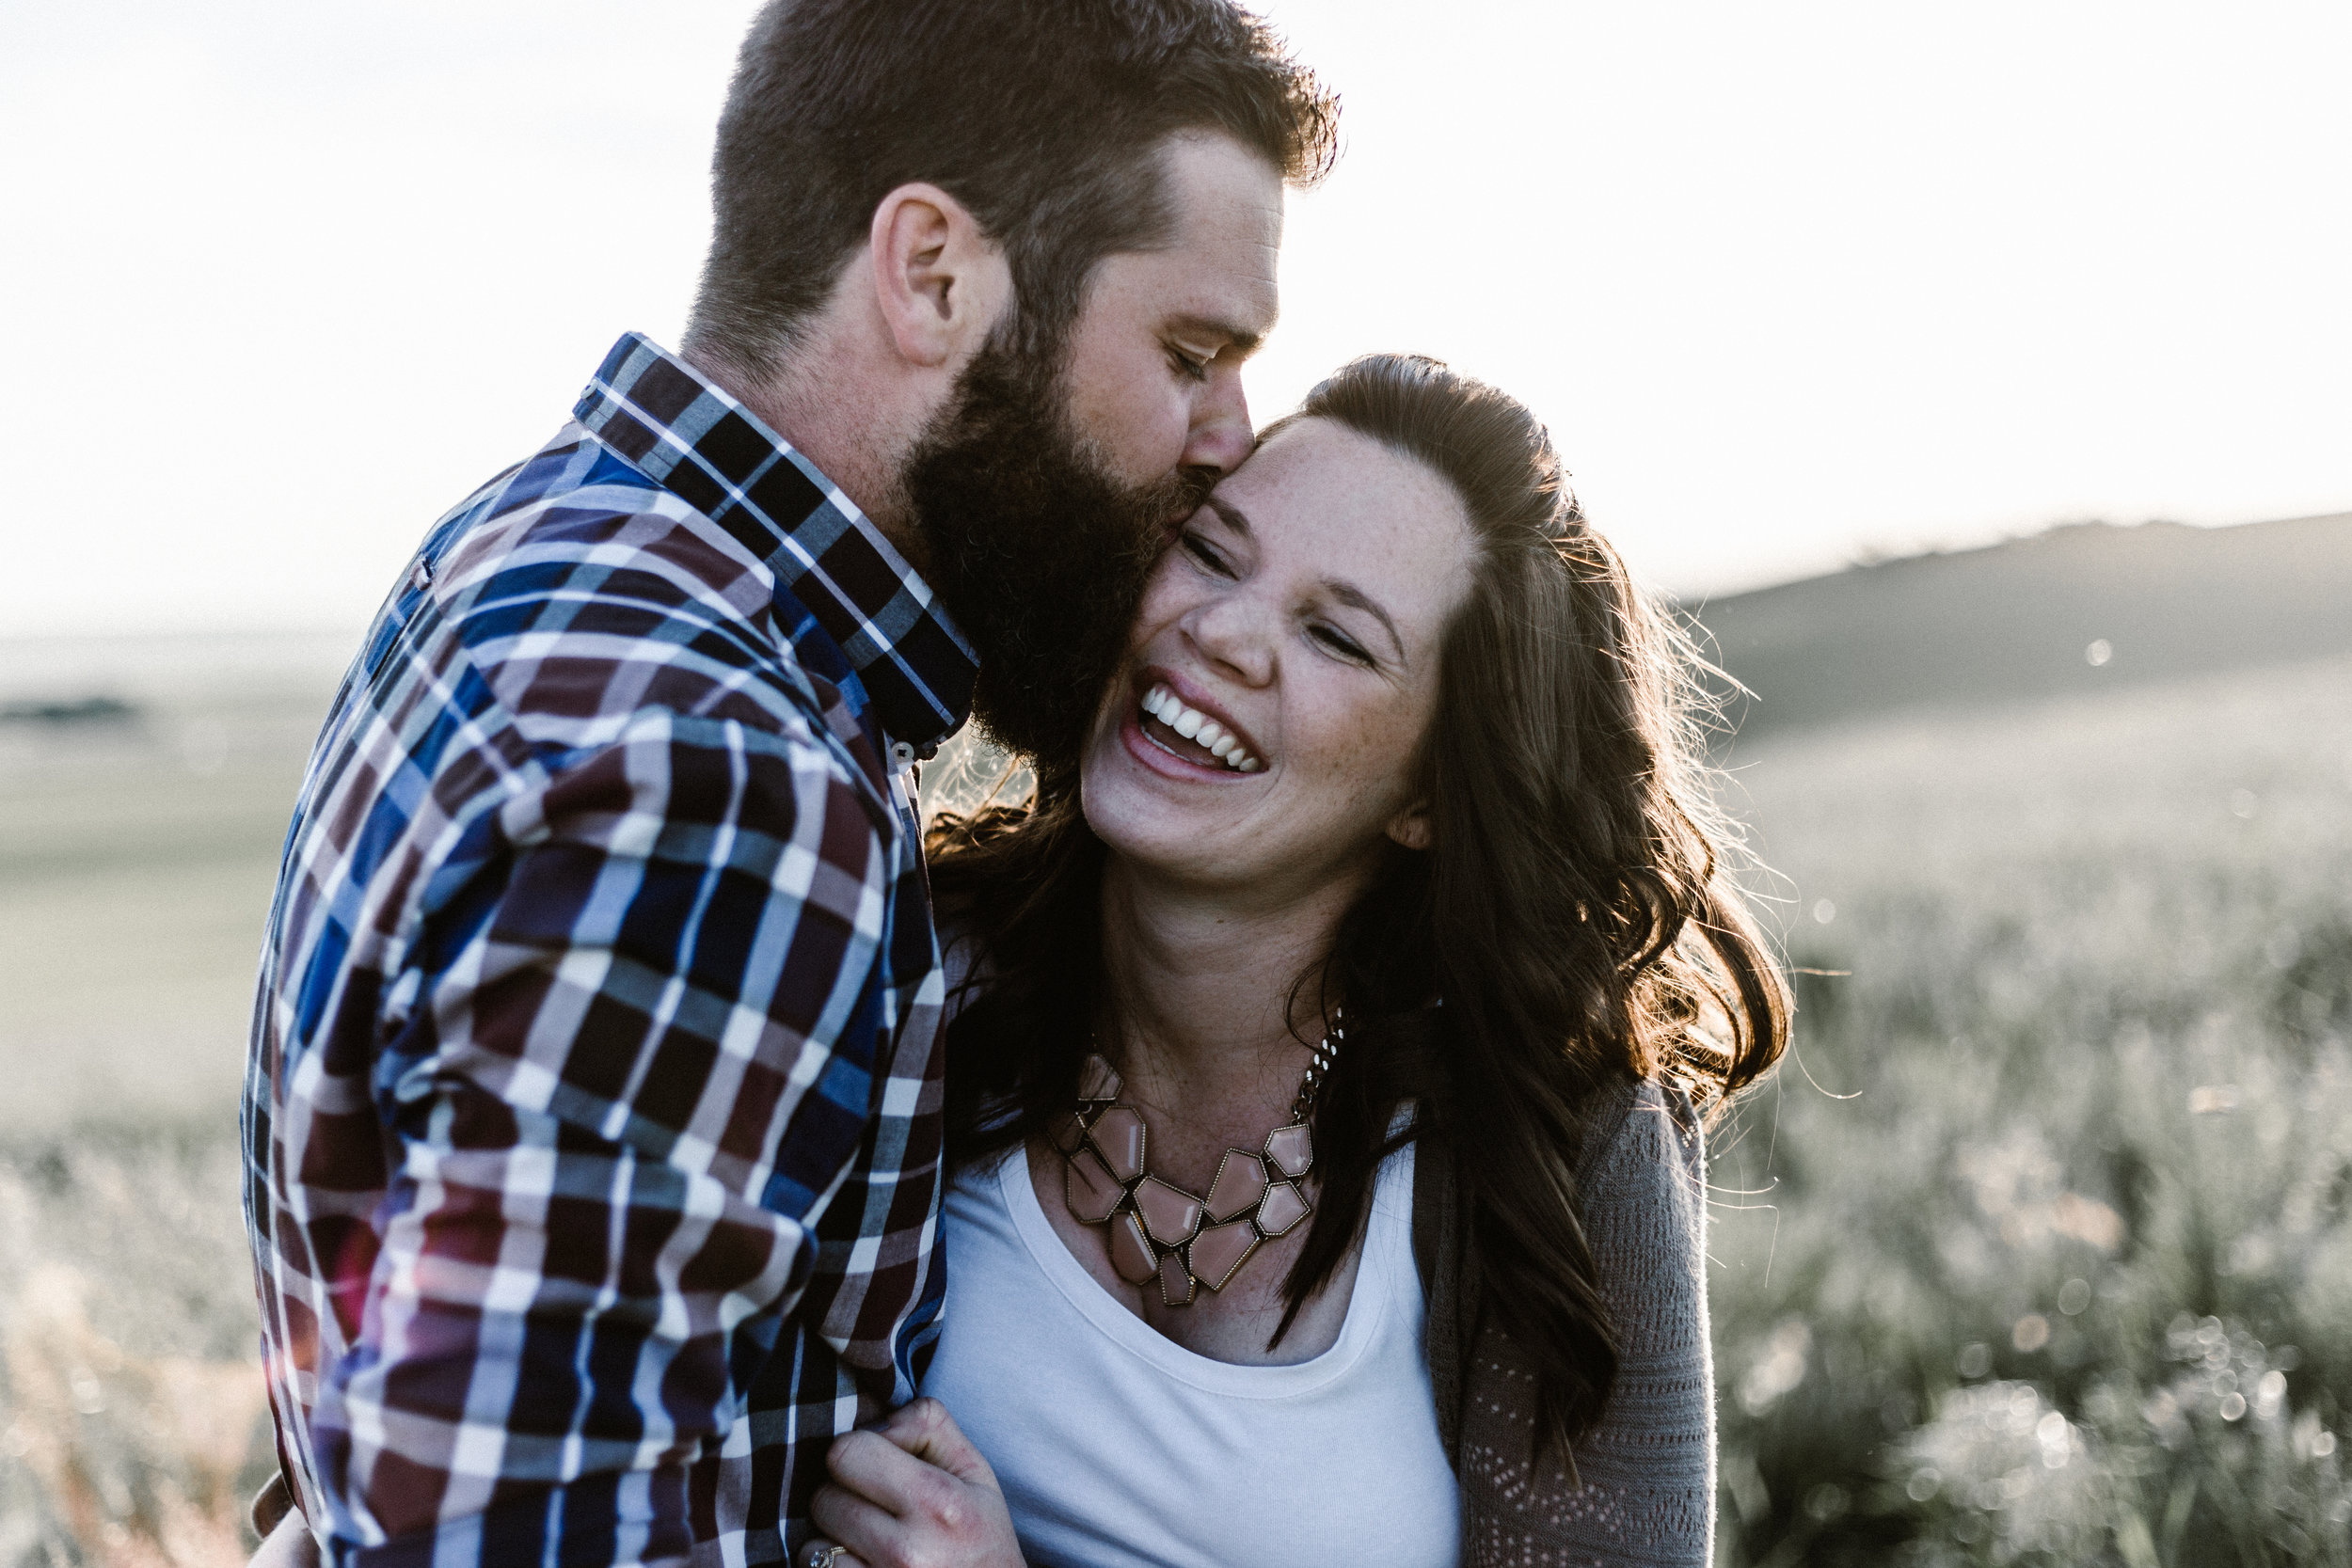 """""""So thankful we found this!"""" - """"When we started FerfilityCare and NaProTechnology, I had no idea how much I would come to understand my body, get the answers and help I needed to mitigate my symptoms, and also support my husband and my desire to achieve pregnancy naturally. I feel so much healthier, happier and enjoy life so much more now that I understand my body. I truly wish that every women had the knowledge I do about how to naturally support their fertility health with FertilityCare and NaProTechnology."""" -T.C."""